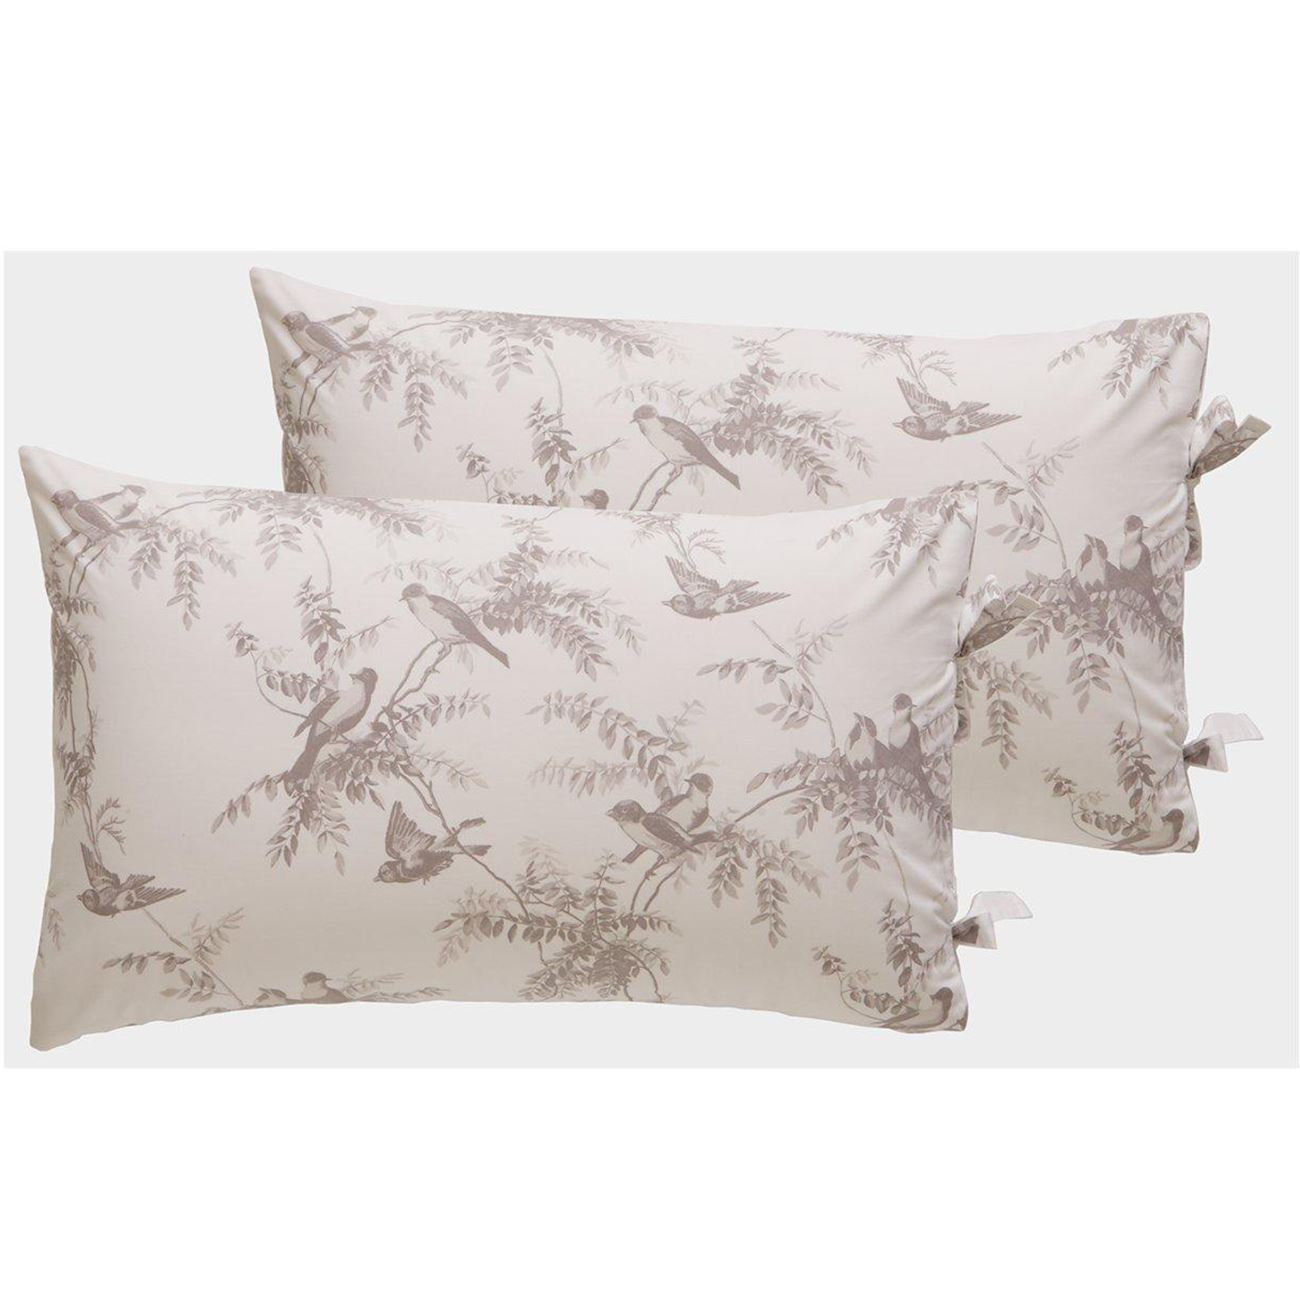 Holly Willoughby Fauna Bedding Range Duvet Cover